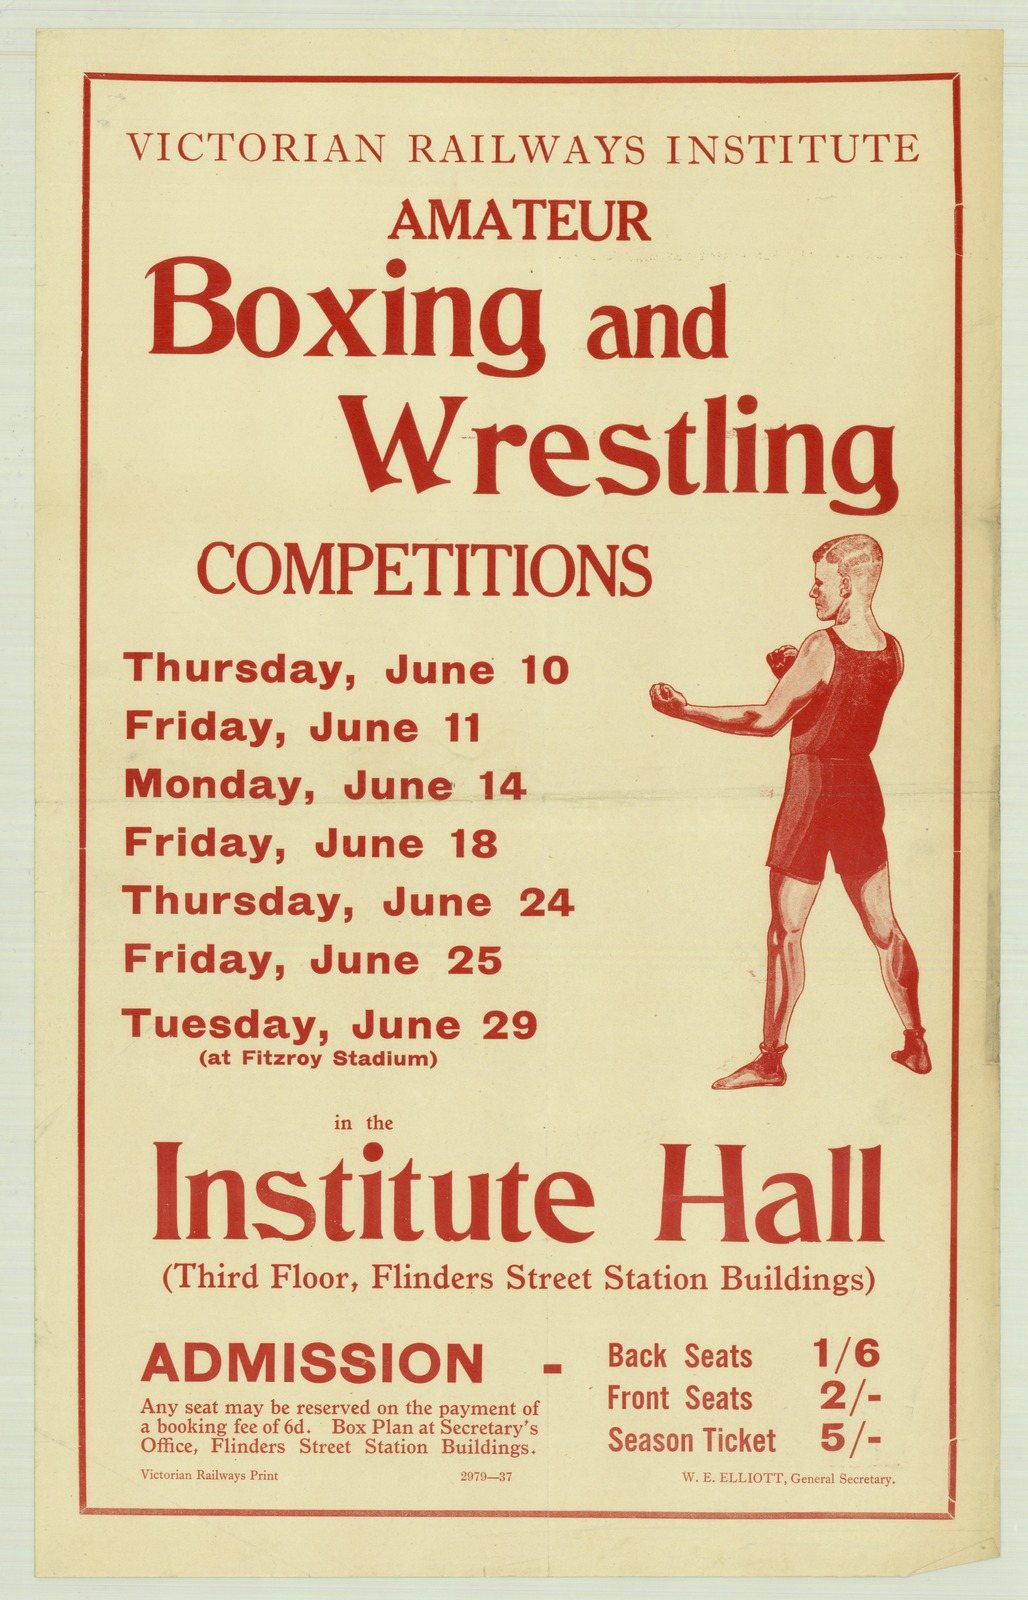 Victorian Railways Institute amateur boxing and wrestling competitions. Credit: Victorian Railways via State Library Victoria